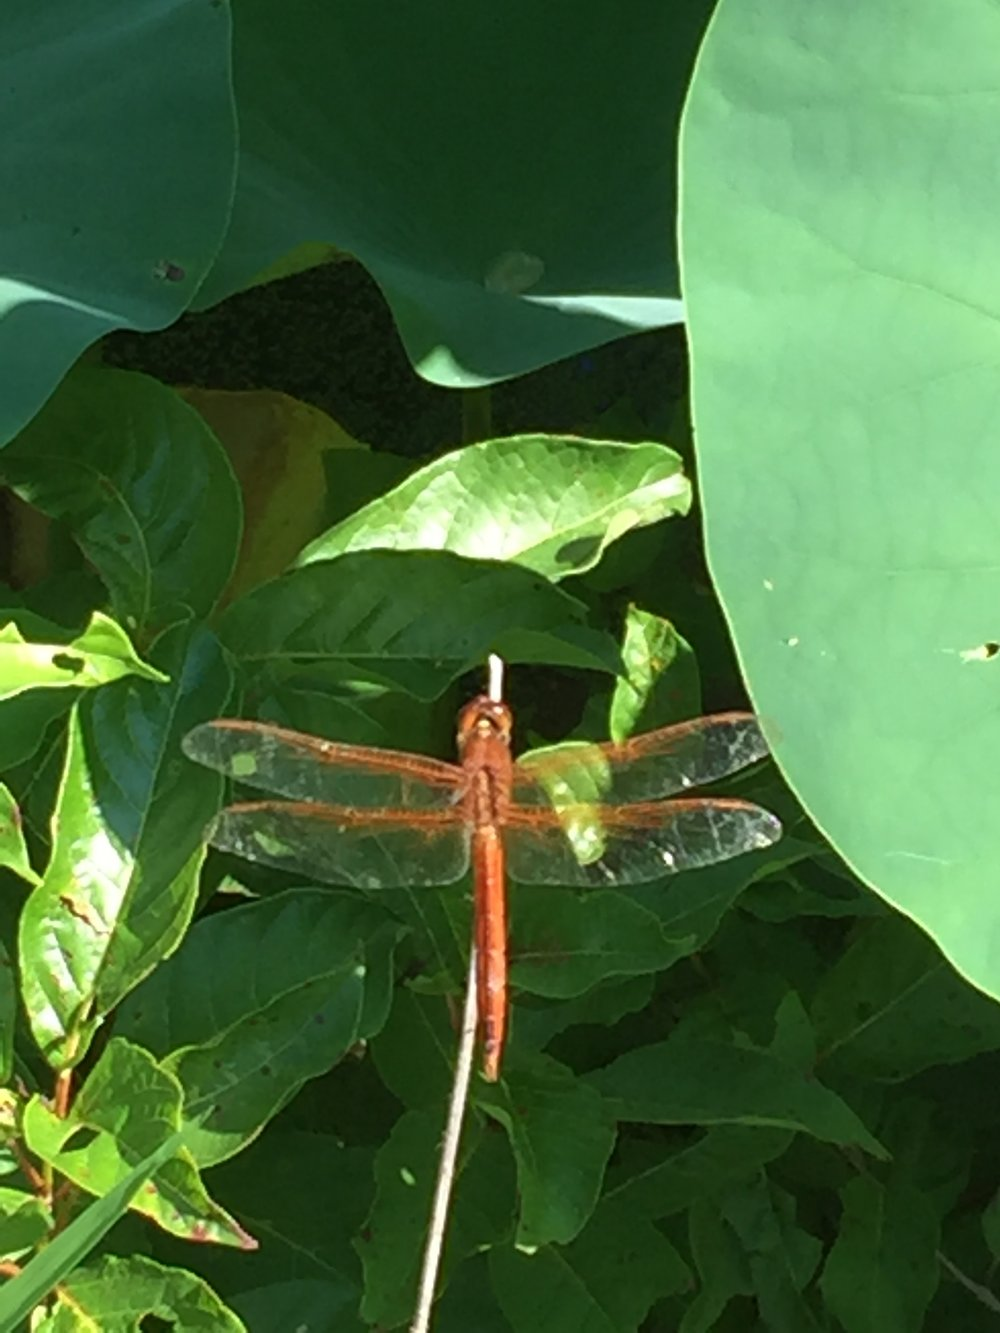 Dragonfly! Also lots of frogs (heard but not seen).